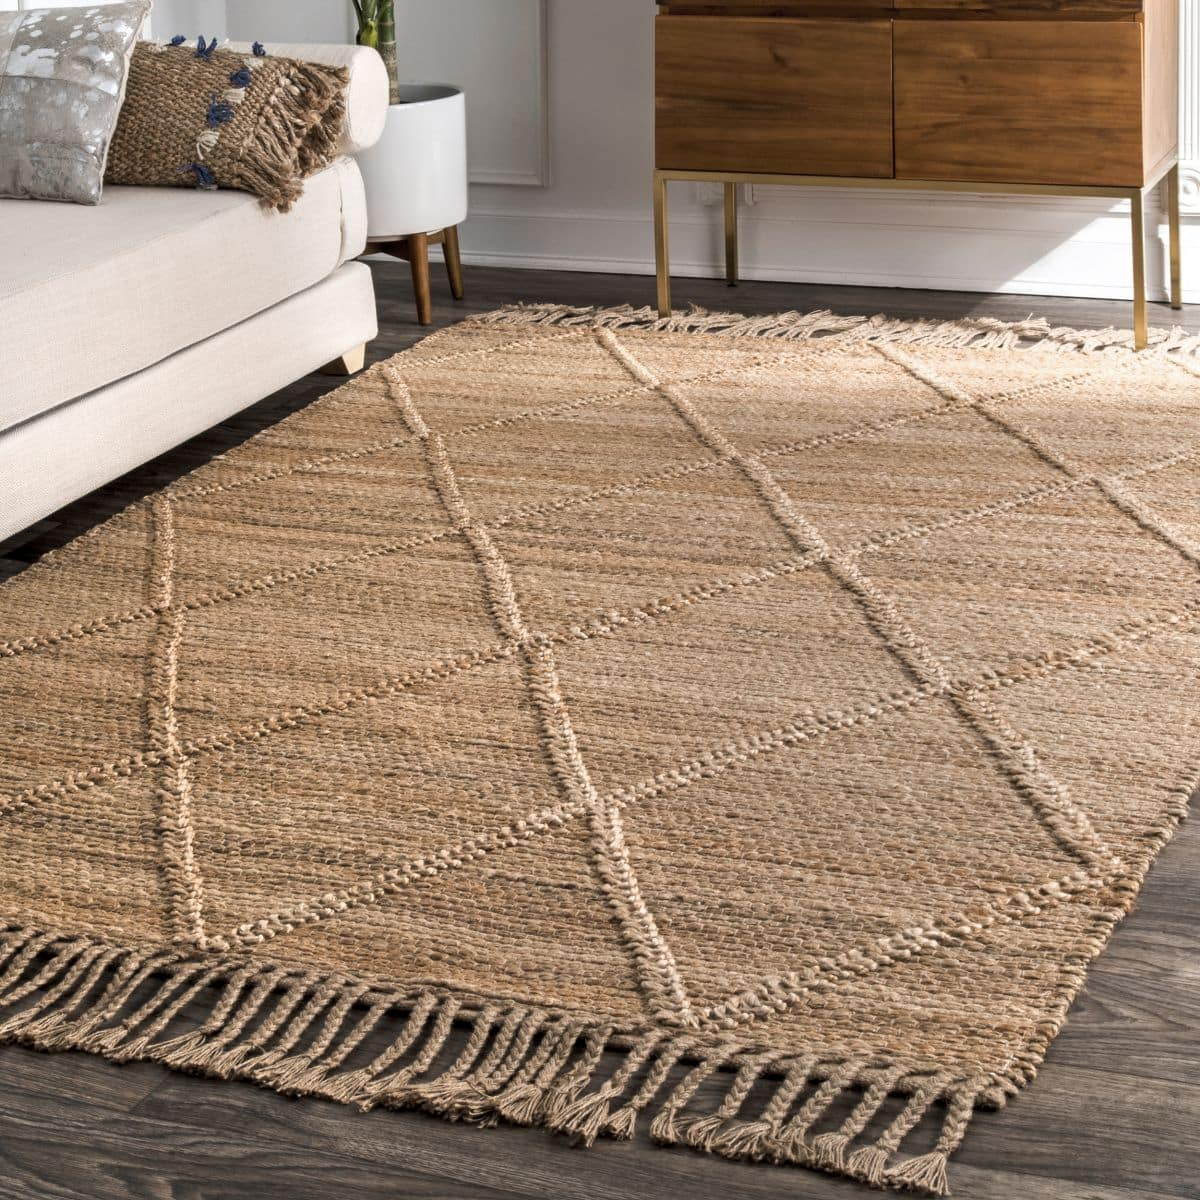 Natural Braided Treillage Area Rug With Tassels